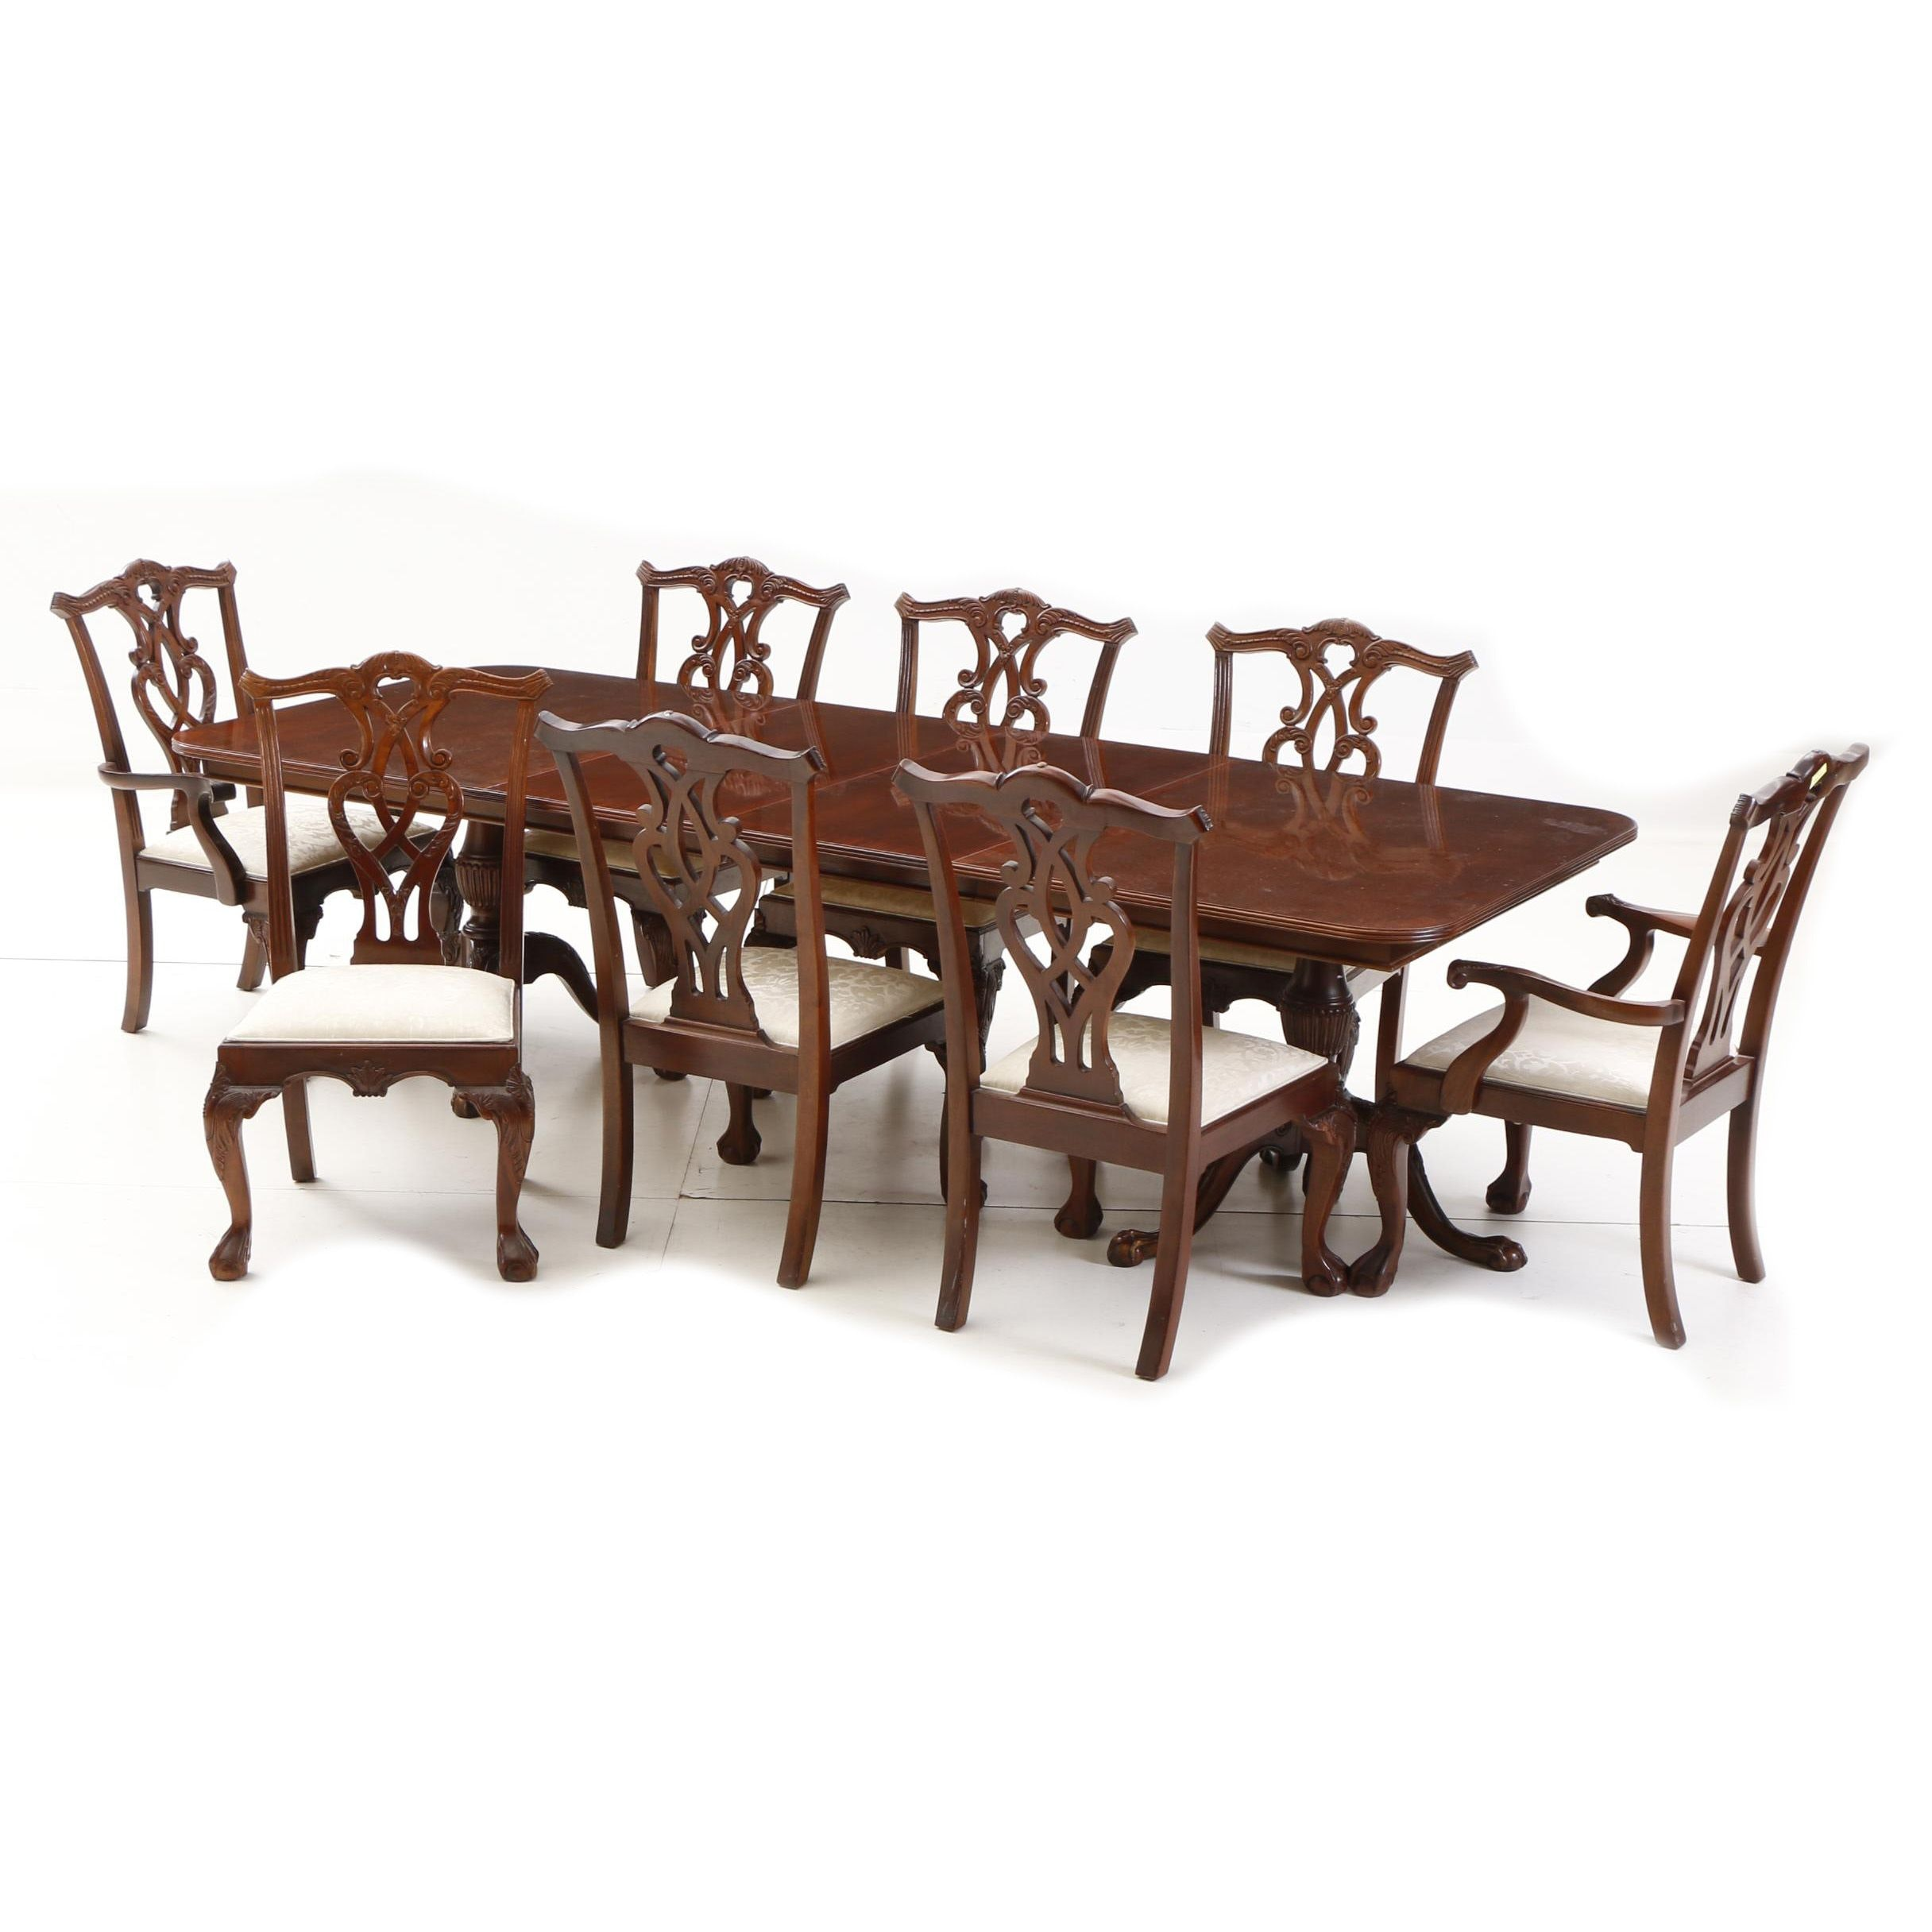 Mahogany Dinning Table and Chippendale Style Chairs by Stanley Furniture